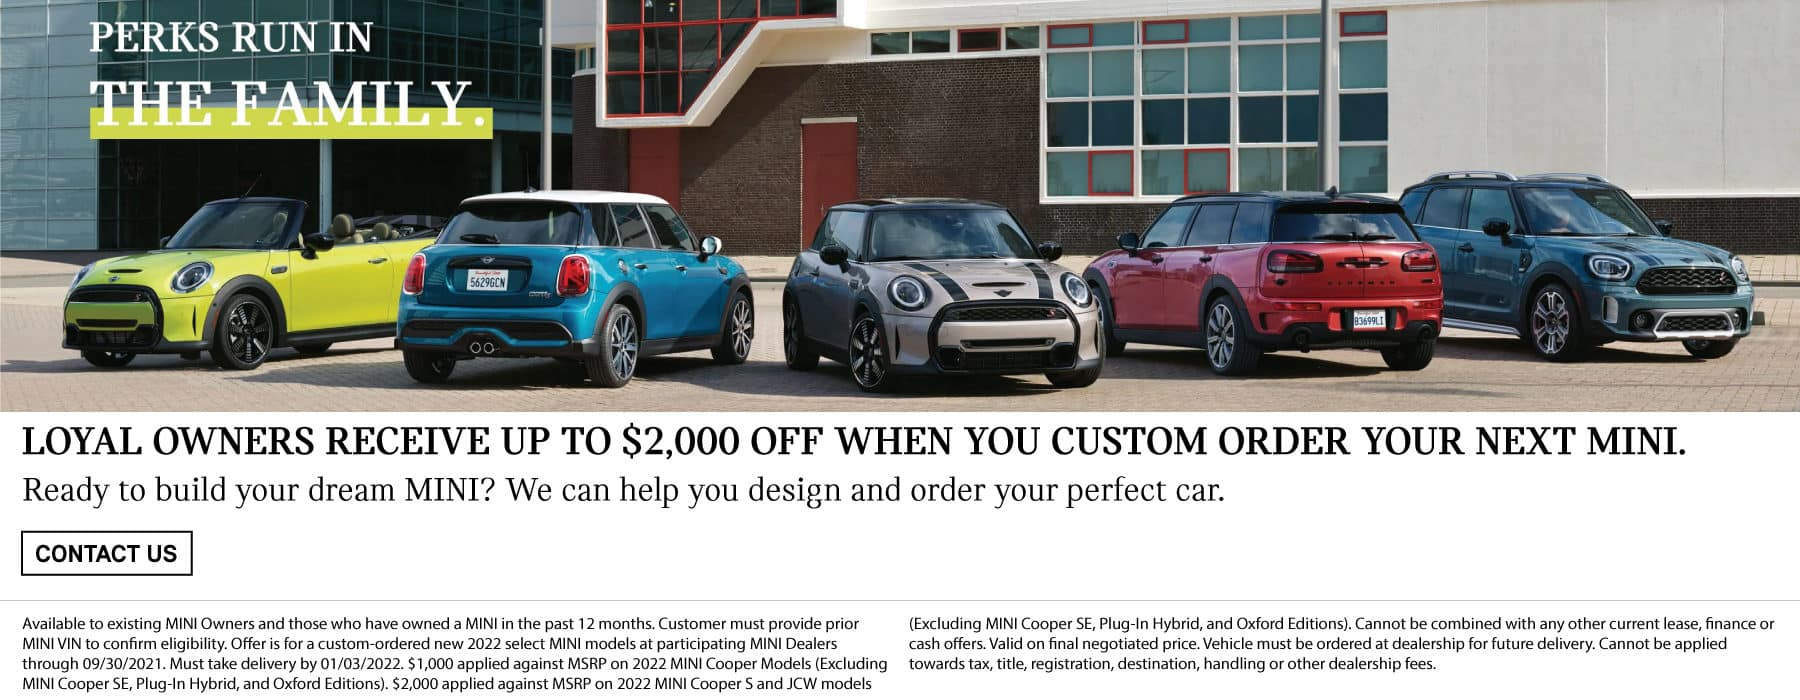 Loyal owners receive up to $2,000 off when you custom order your next MINI. Ready to build your dream MINI? We can help you design and order your perfect car. Click to contact us. Valid through 9/30/21. See dealer for full details. Image shows a family of 2022 MINI vehicles parked in a row outside a modern building.